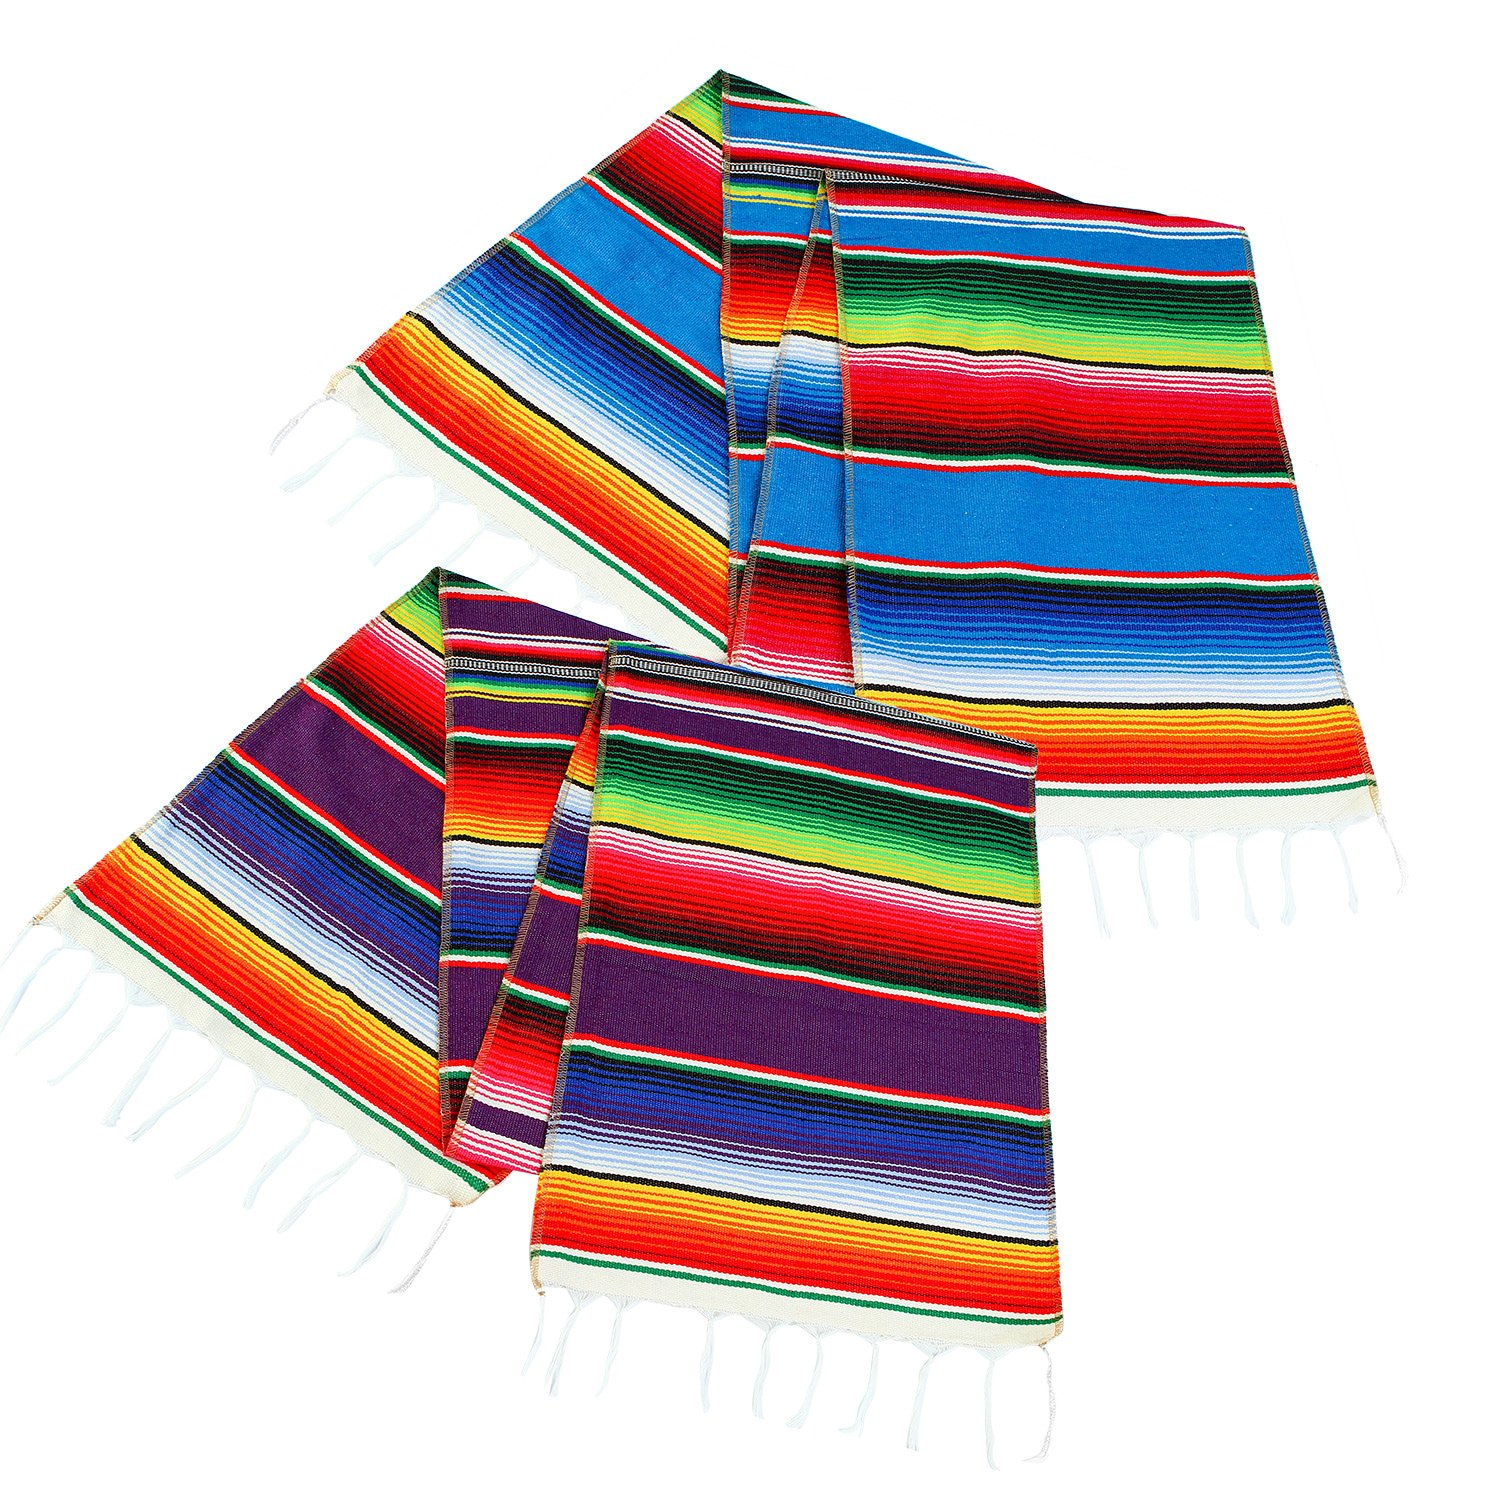 Aneco 2 Pack 14 by 84 Inch Mexican Table Runner Mexican Serape Blanket Cotton Colorful Fringe Table Runners for Mexican Party Wedding Kitchen Outdoor Decorations by Aneco (Image #1)